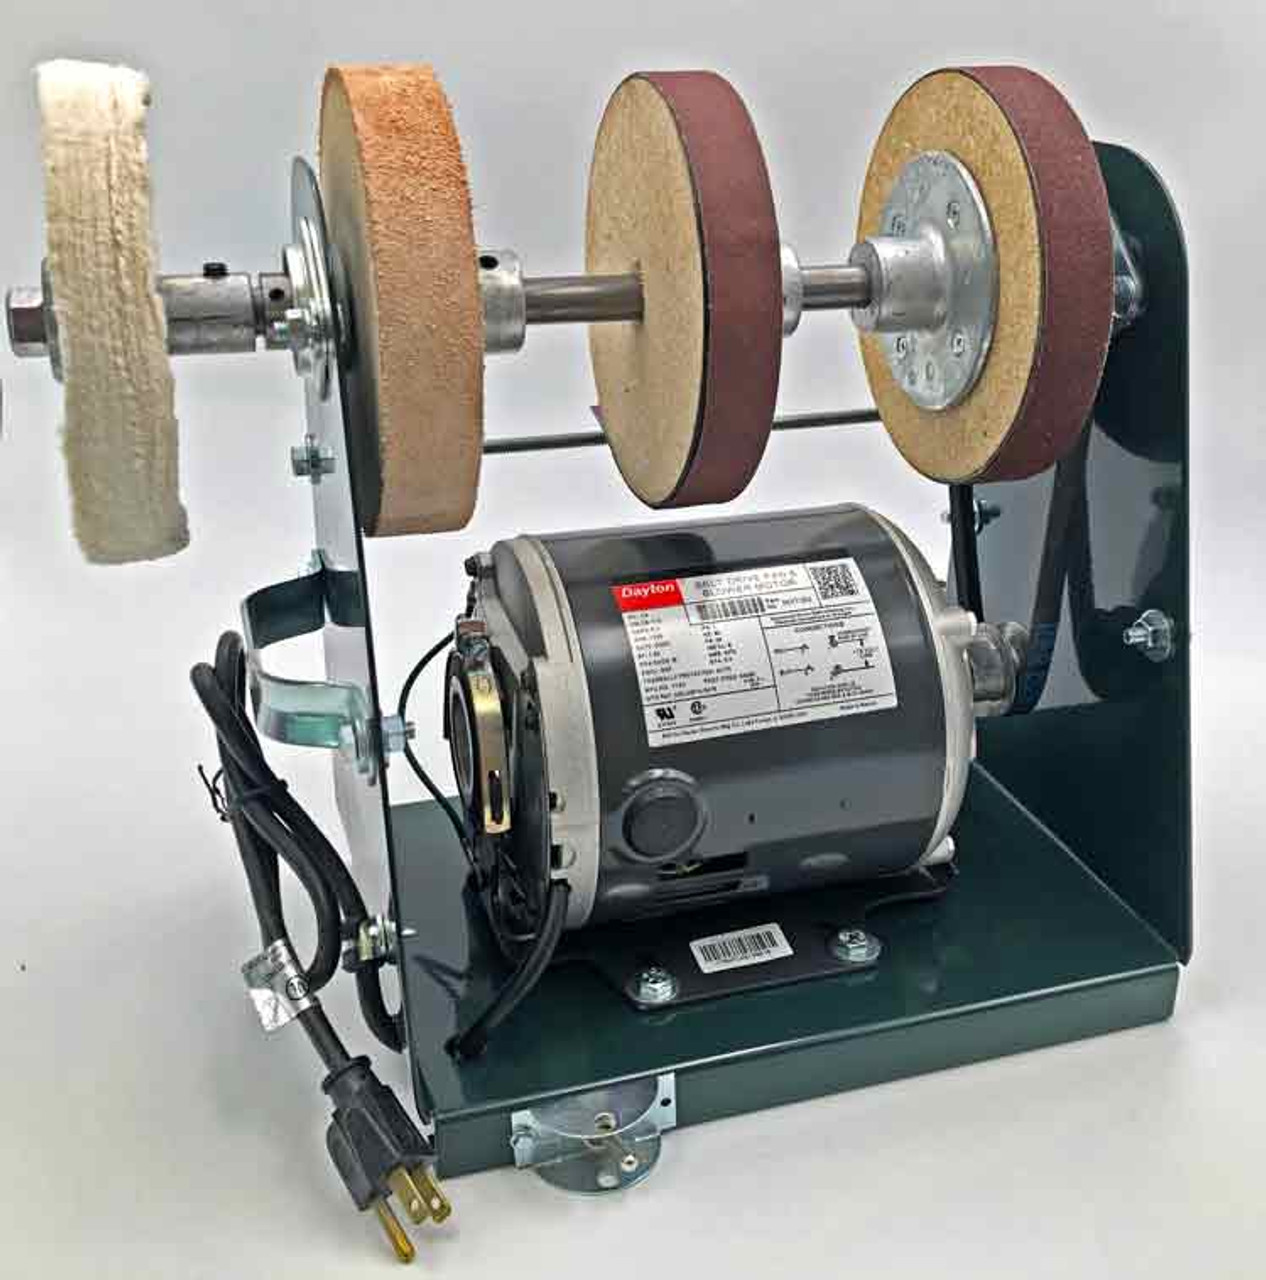 Burke Tote Sharpener showing the front left portion of the sharpener with the sharpening wheels in place.